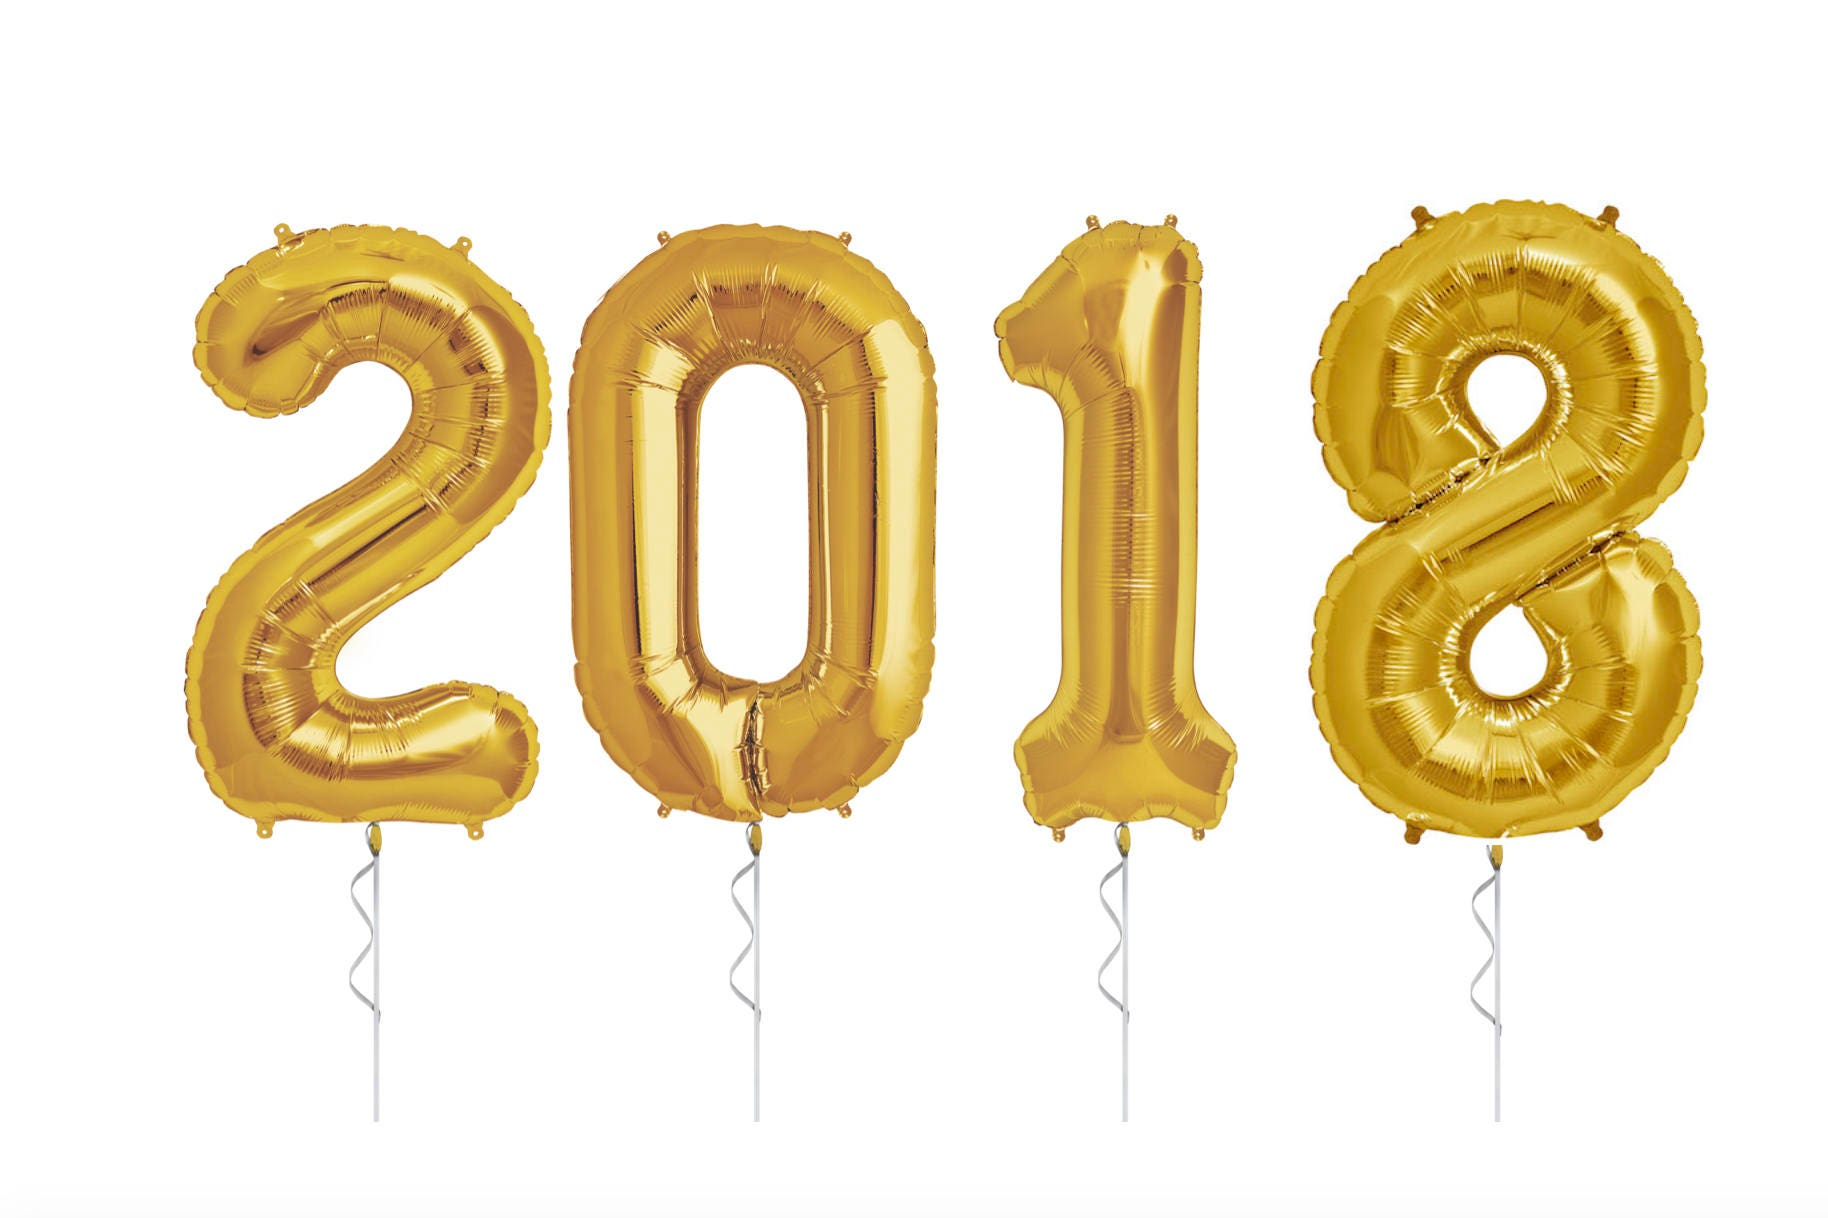 2018 balloons 2018 decor class of 2018 graduation party for Decoration 2018